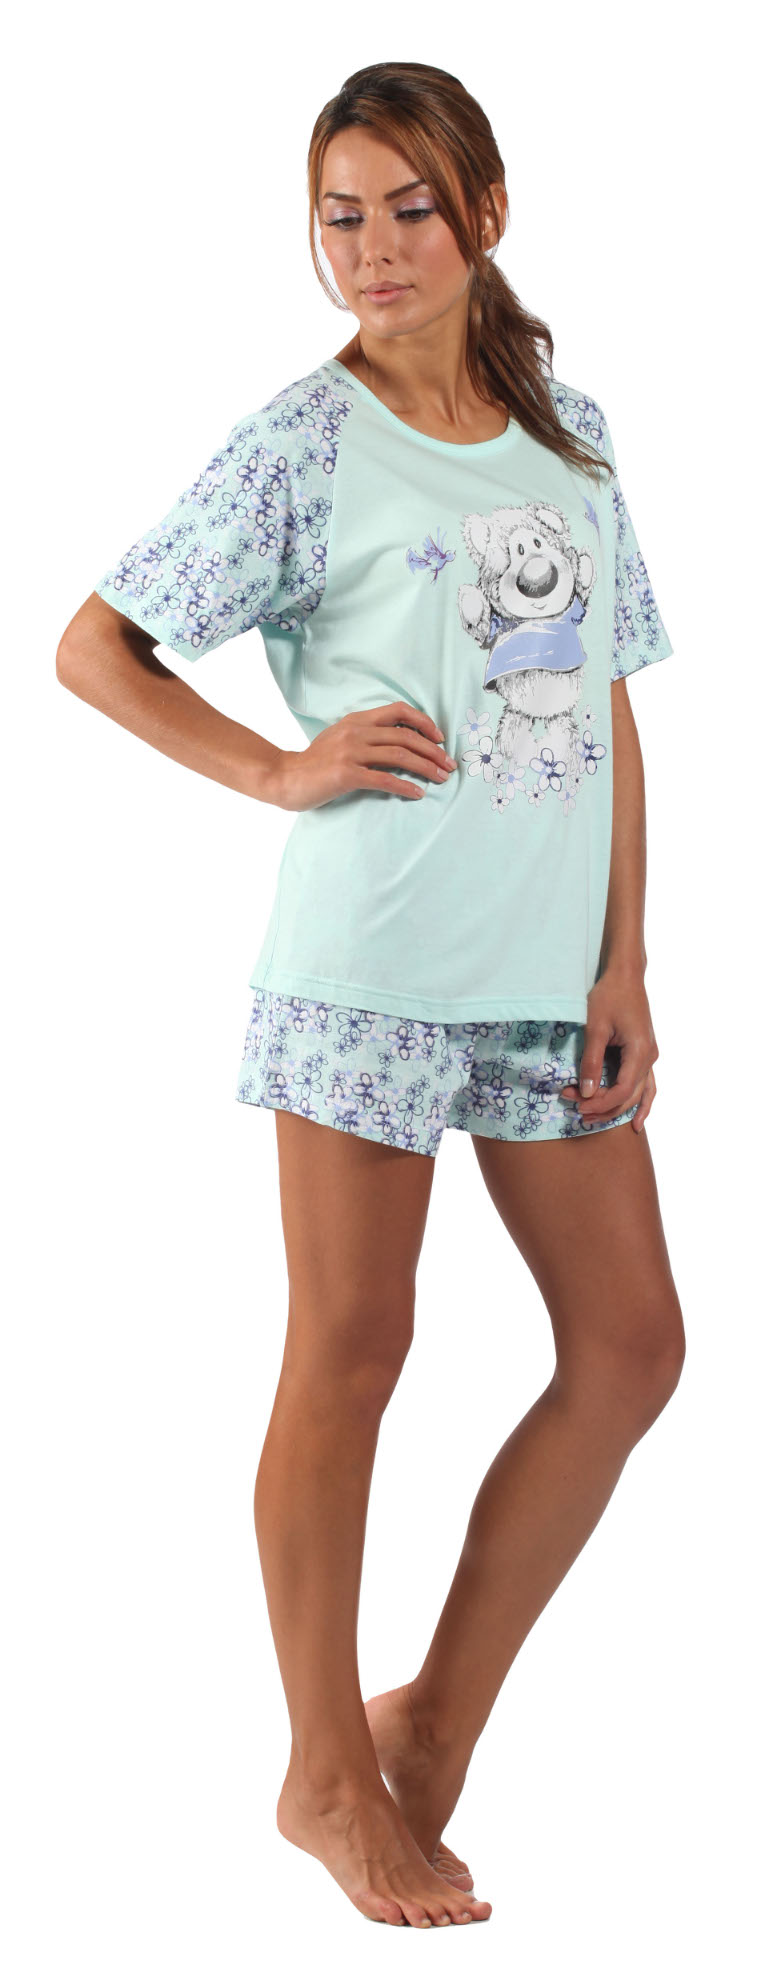 Short sets fit like a breeze. You'll flit about your personal space without cumbersome clothing, carrying out the day's chores in the cutest brand of comfort. Patterns ranging from cake to watermelons imbue another layer of quirky put-togetherness. These short sets exist on the thin line between pajamas and regular clothes, ensuring you won't feel underdressed or unprepared to tackle.